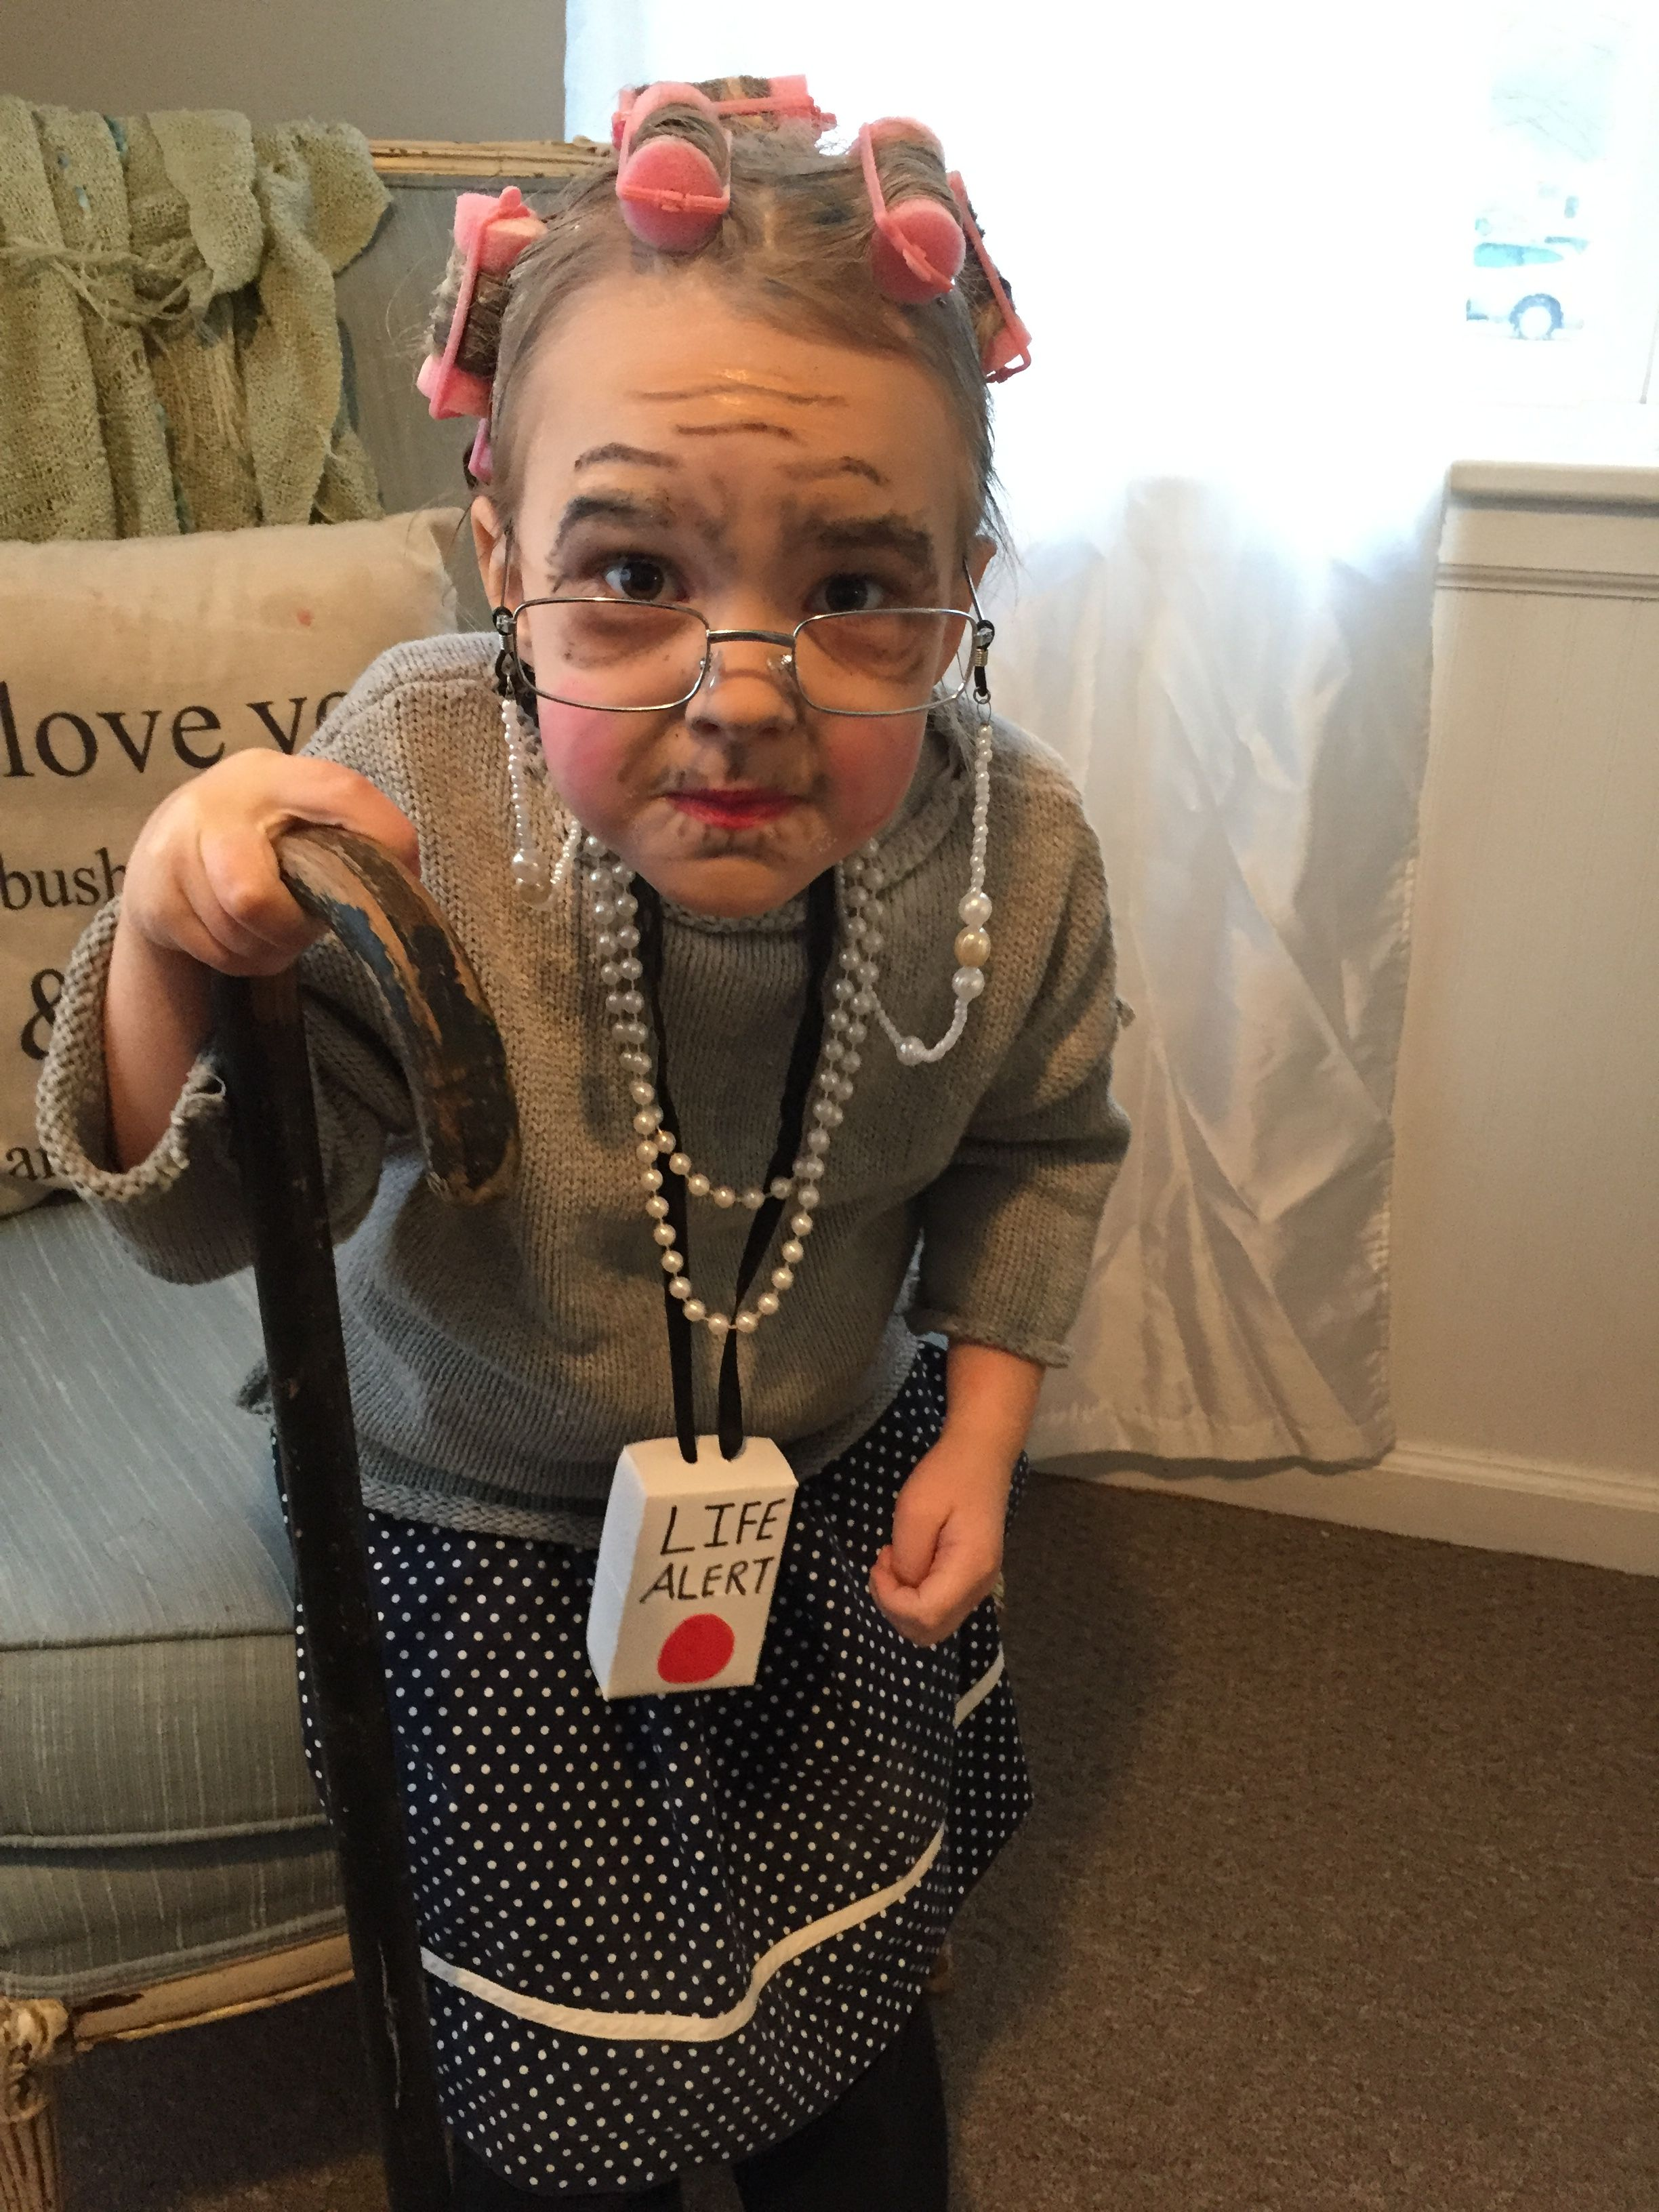 old lady makeup and costume 100th day of school 100th day of school pinterest costumes. Black Bedroom Furniture Sets. Home Design Ideas